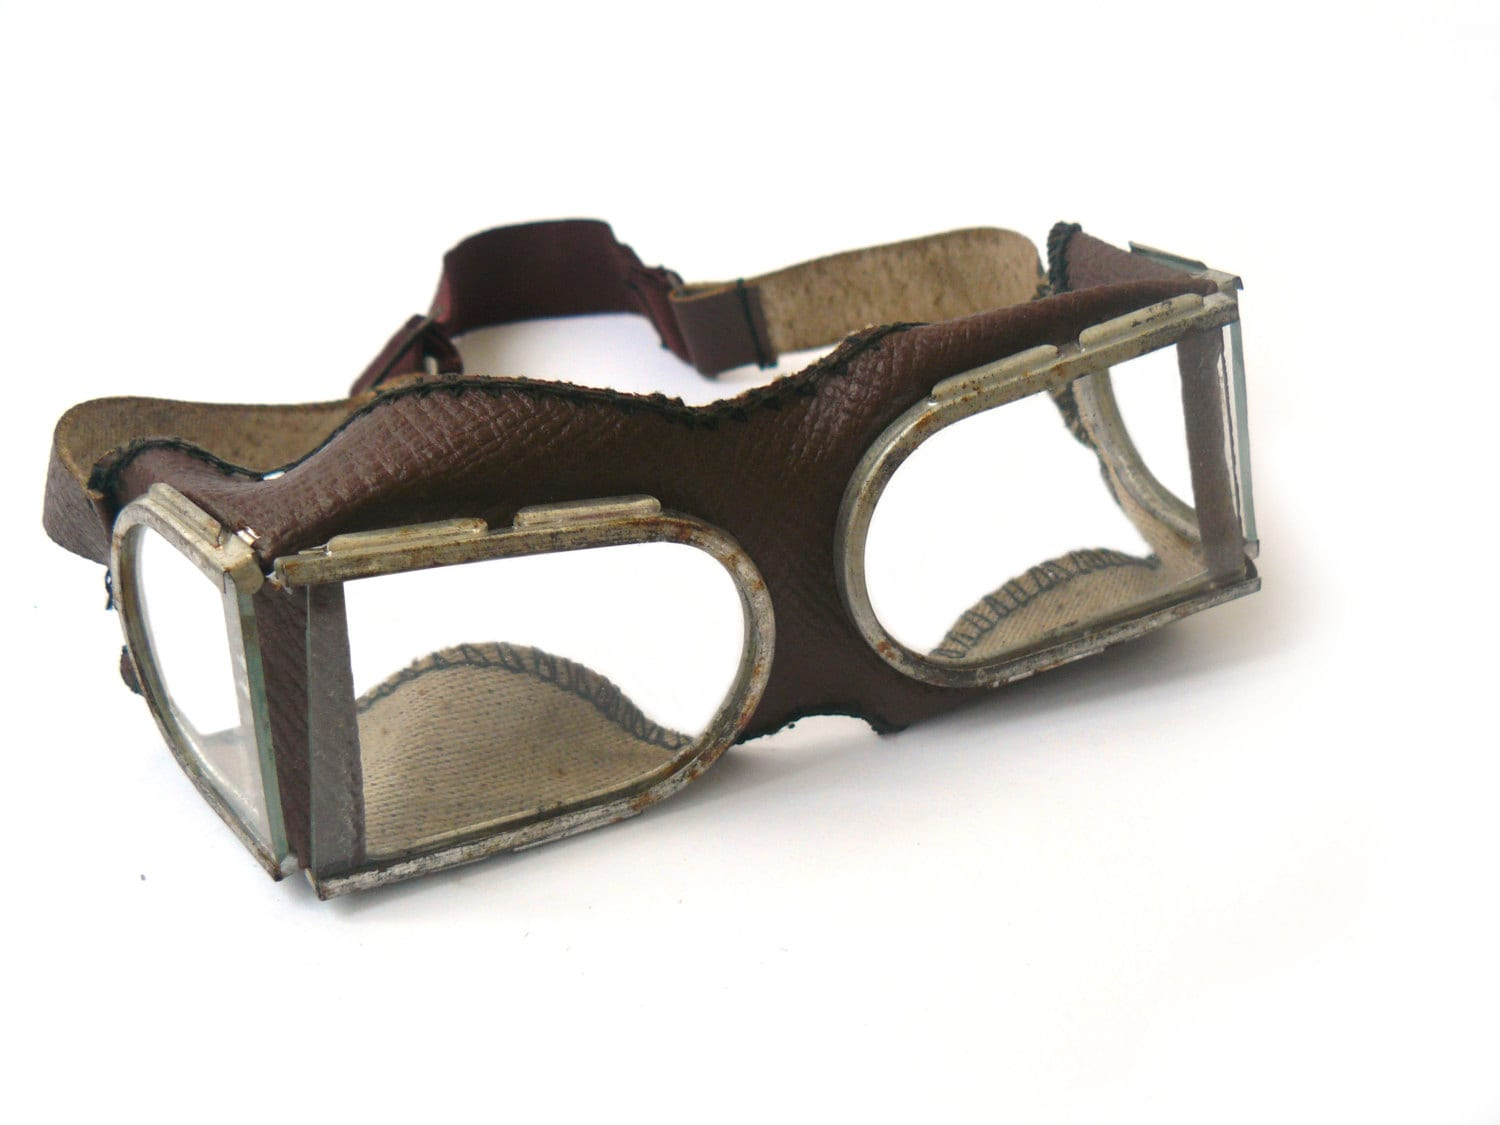 Glasses Frame Welding : Vintage Eyewear protective mask welding goggles by ...